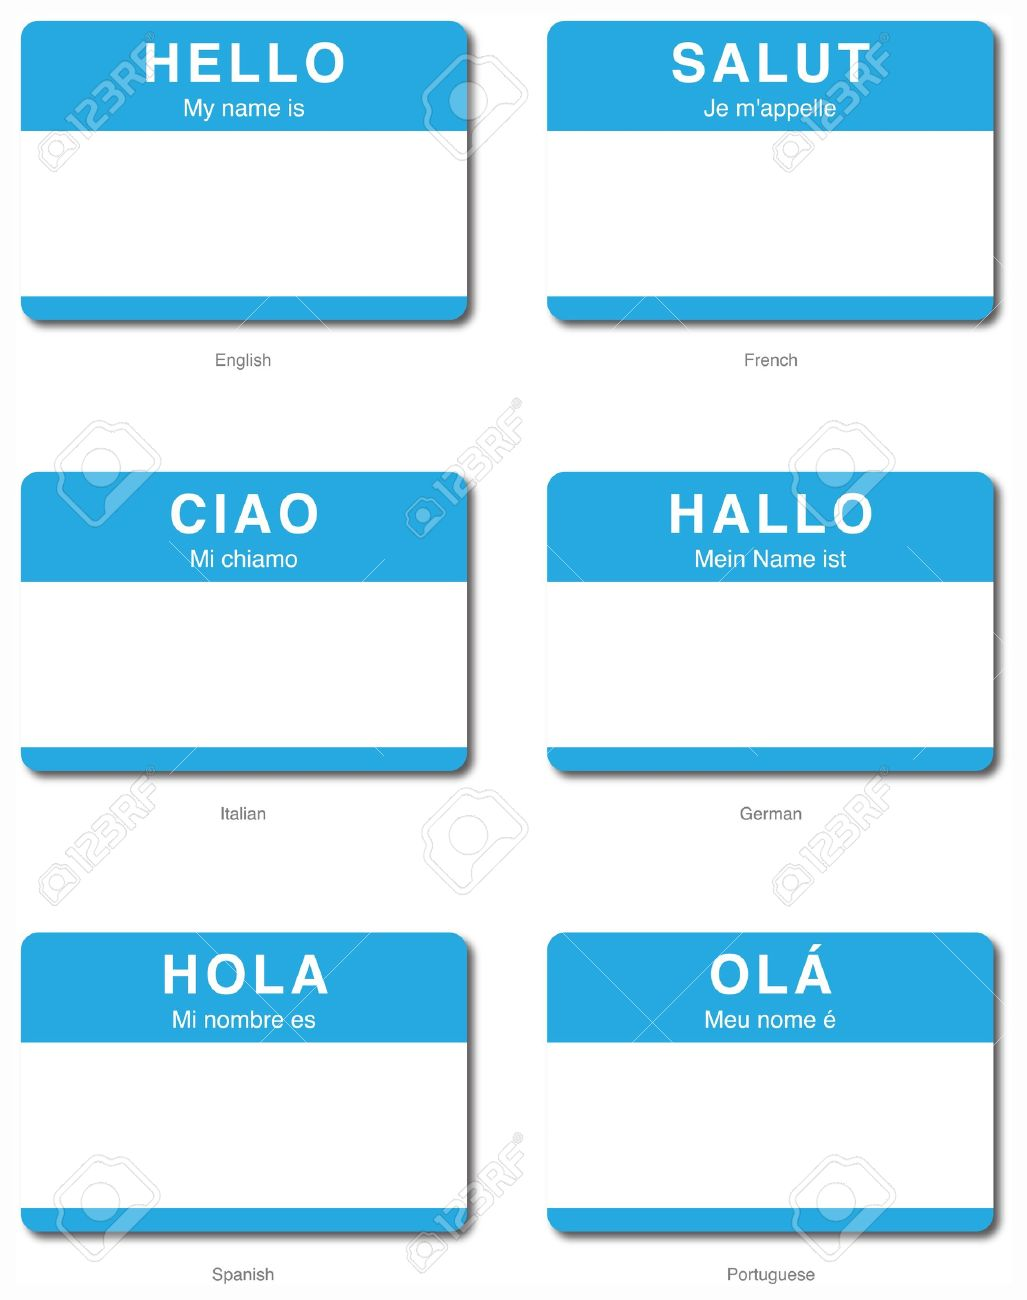 Foreign Language Of Hello My Name Is Sticker In English French